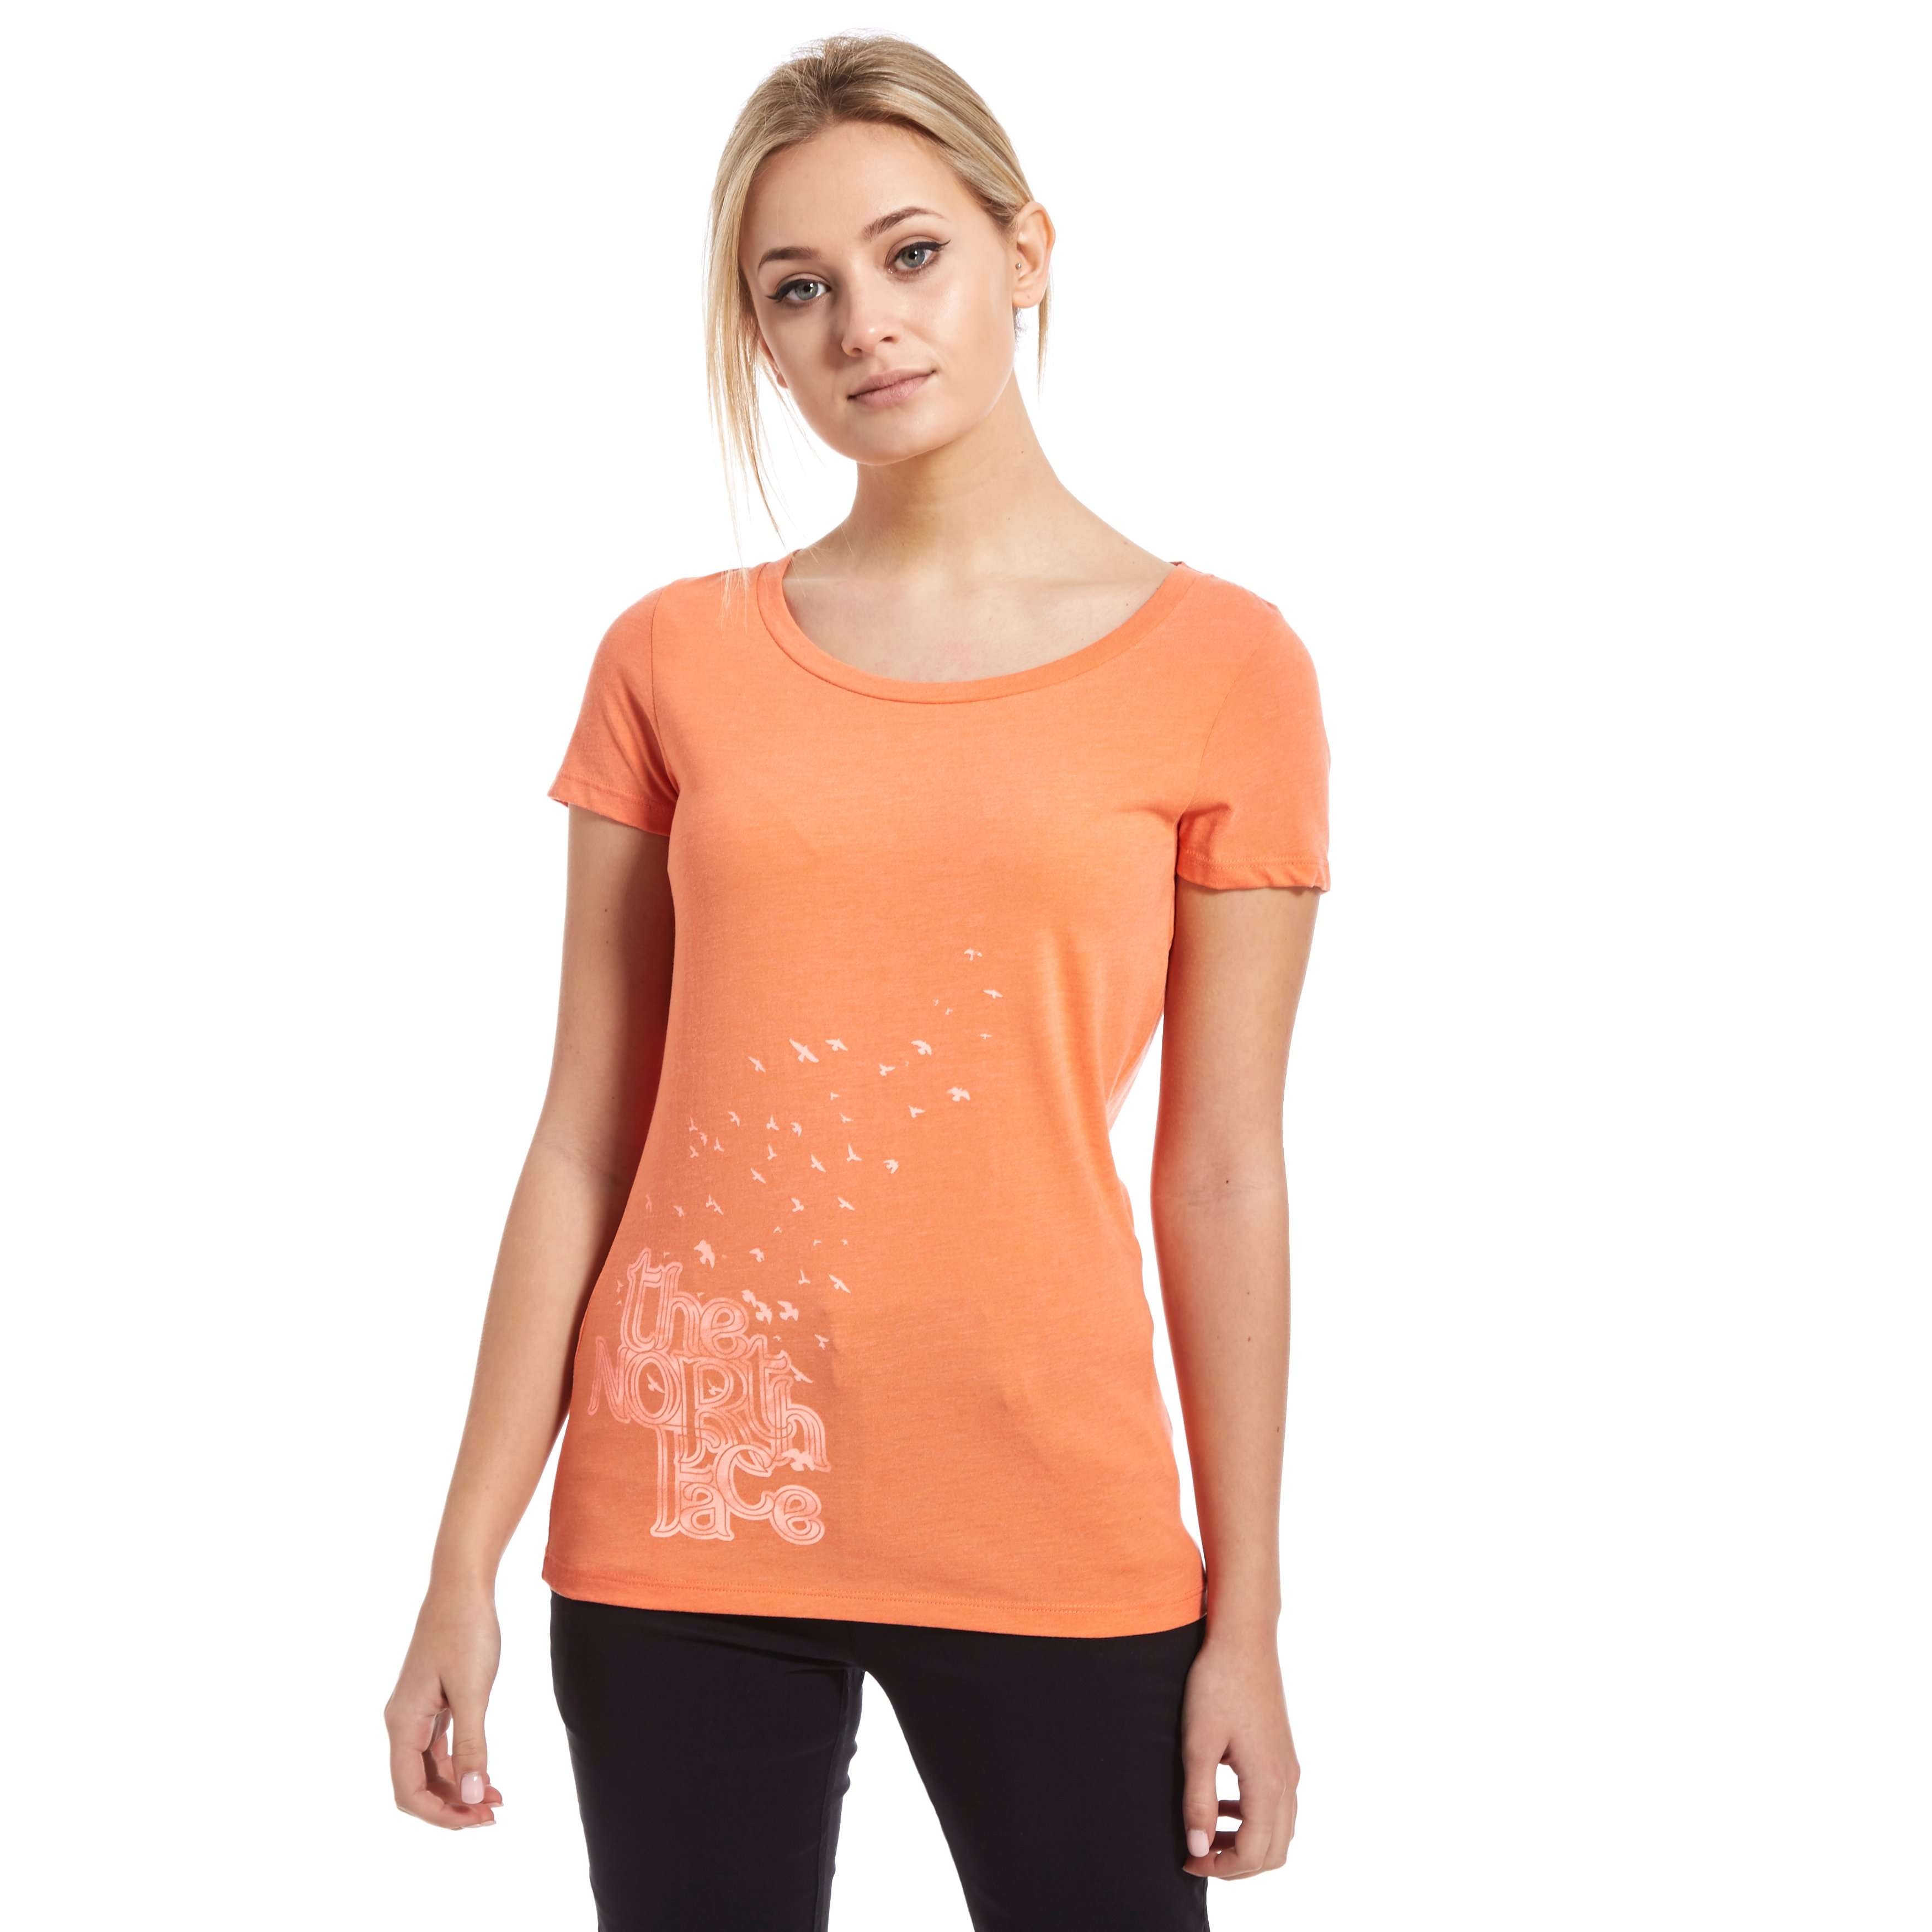 THE NORTH FACE Women's Birds & Clouds T-Shirt